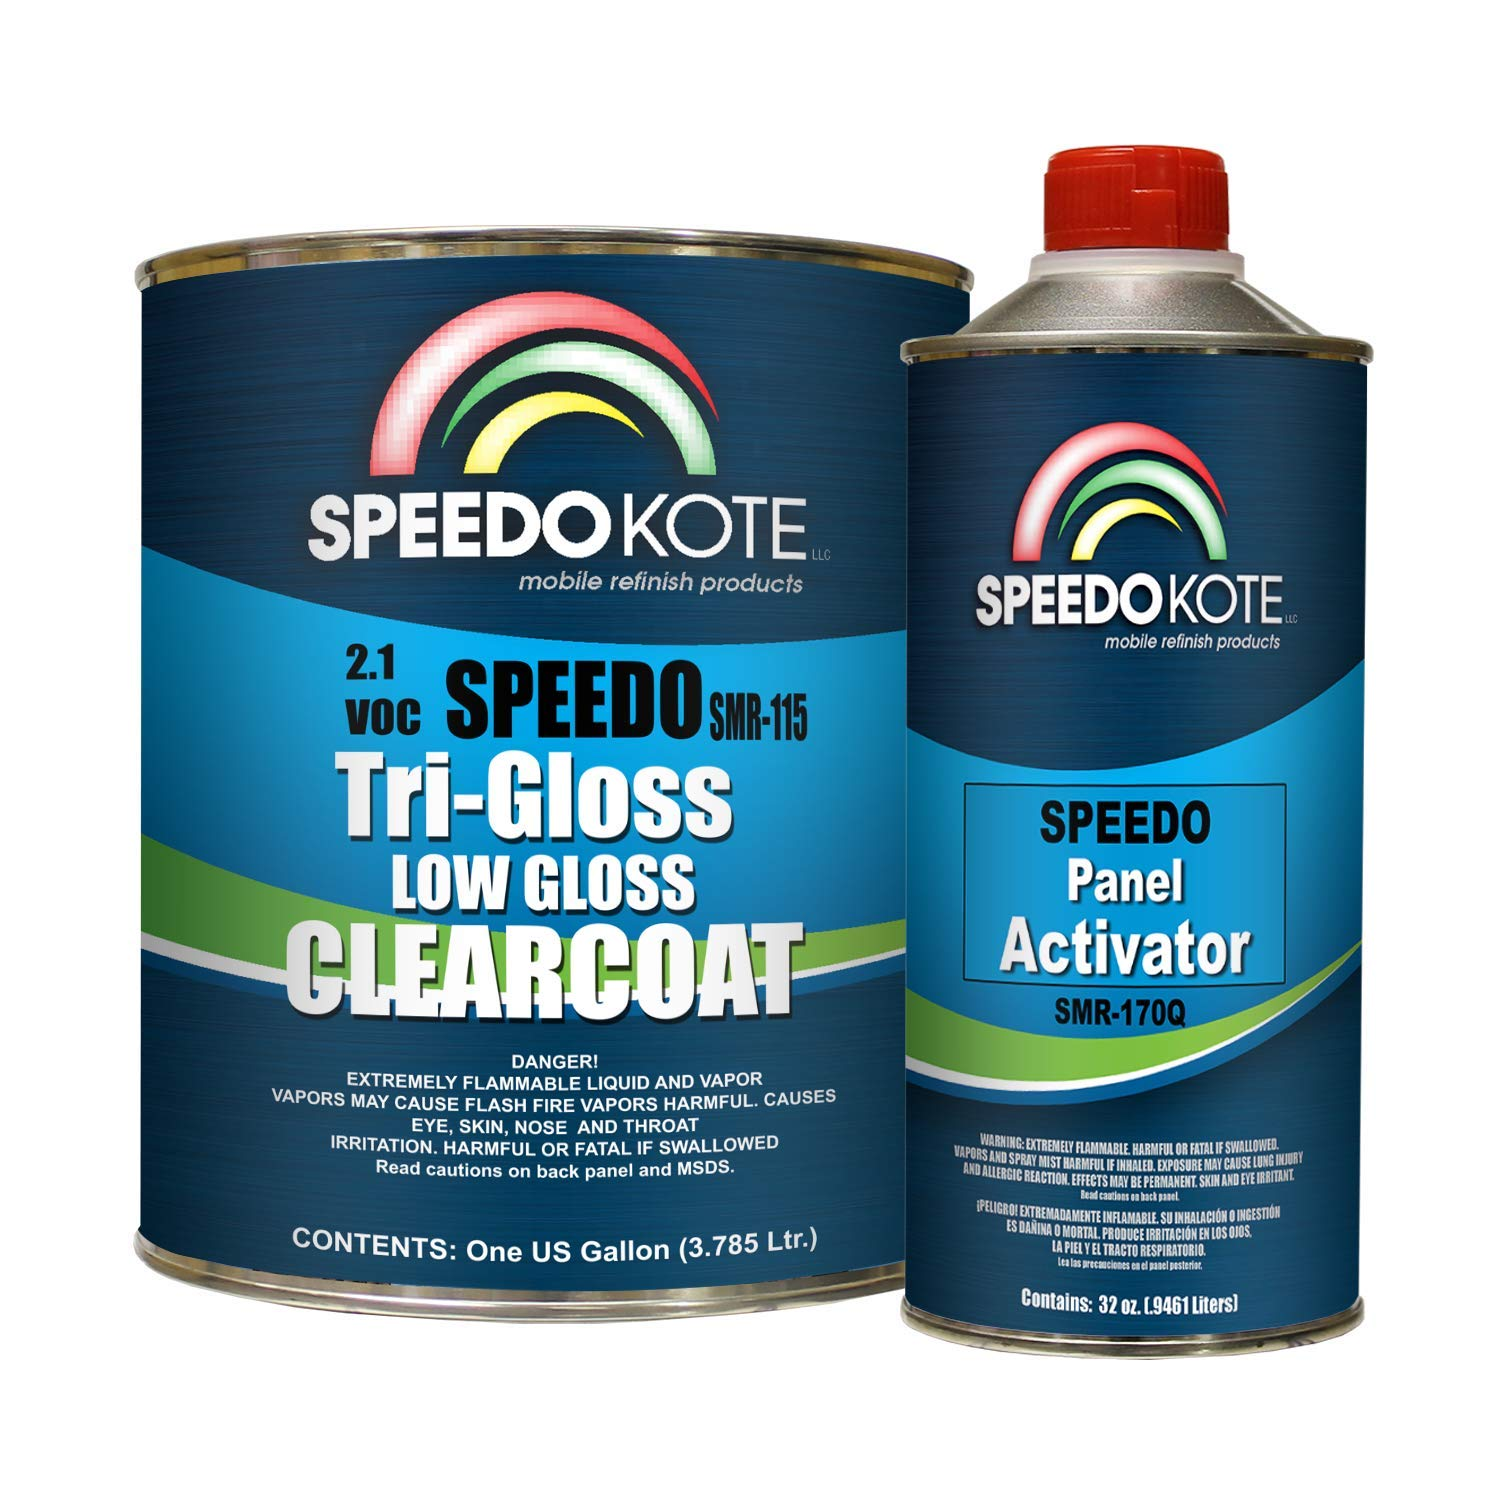 Speedokote SMR-115/170-K-S - Low Gloss 2.1 VOC urethane clear coat, gallon kit Clearcoat with slow speed activator